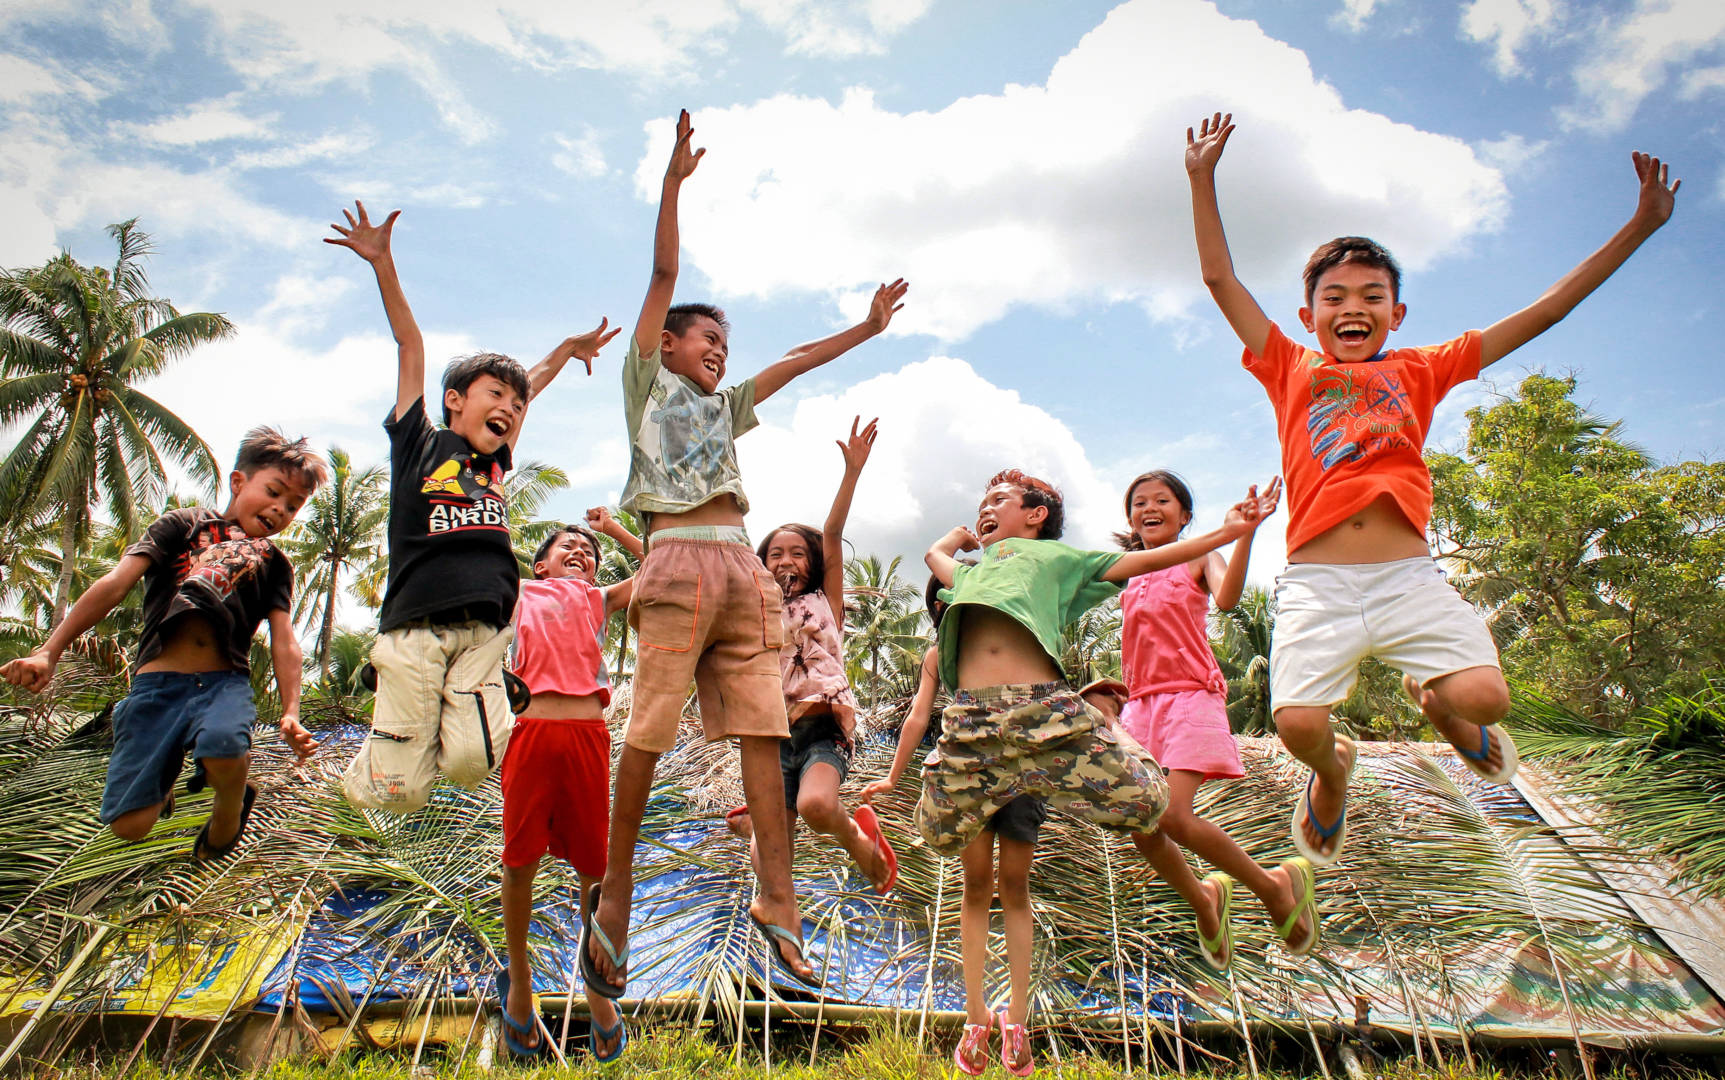 Joyful children in World Vision project jump and play ©World Vision